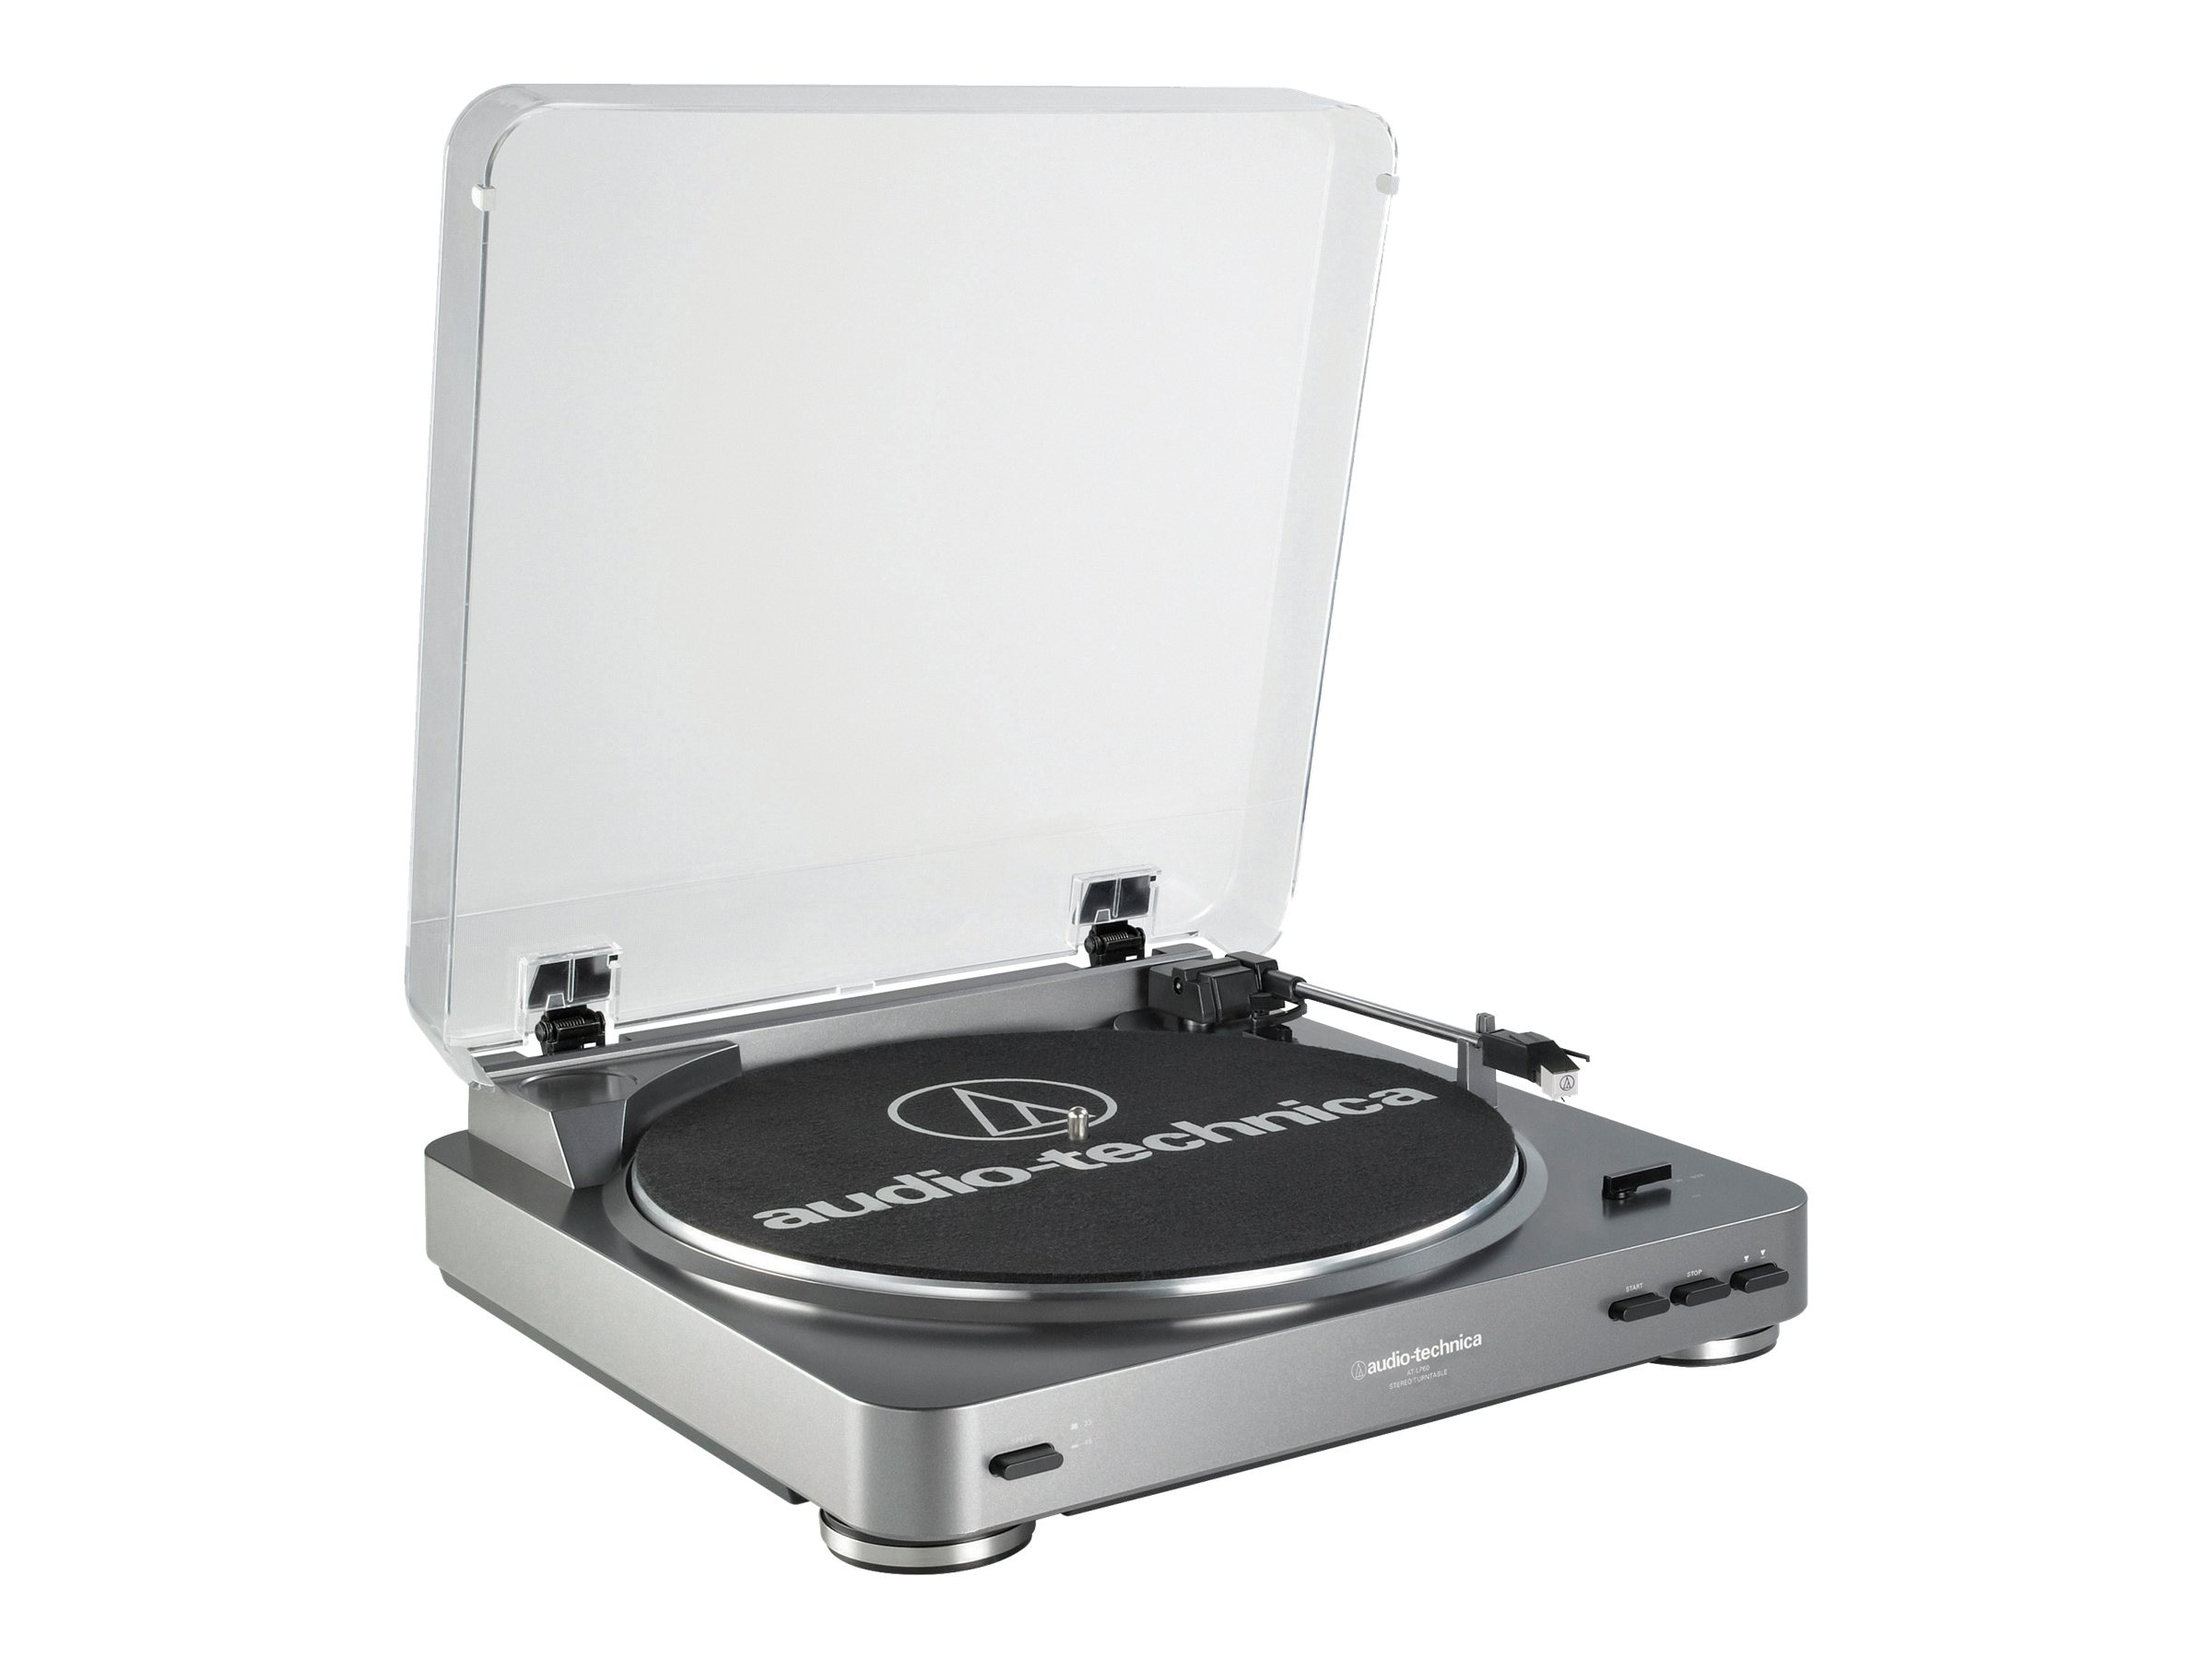 Audio-Technica AT-LP60 Fully Automatic Belt-Drive Turntable, at-lp60, 10733857, Stereo Components